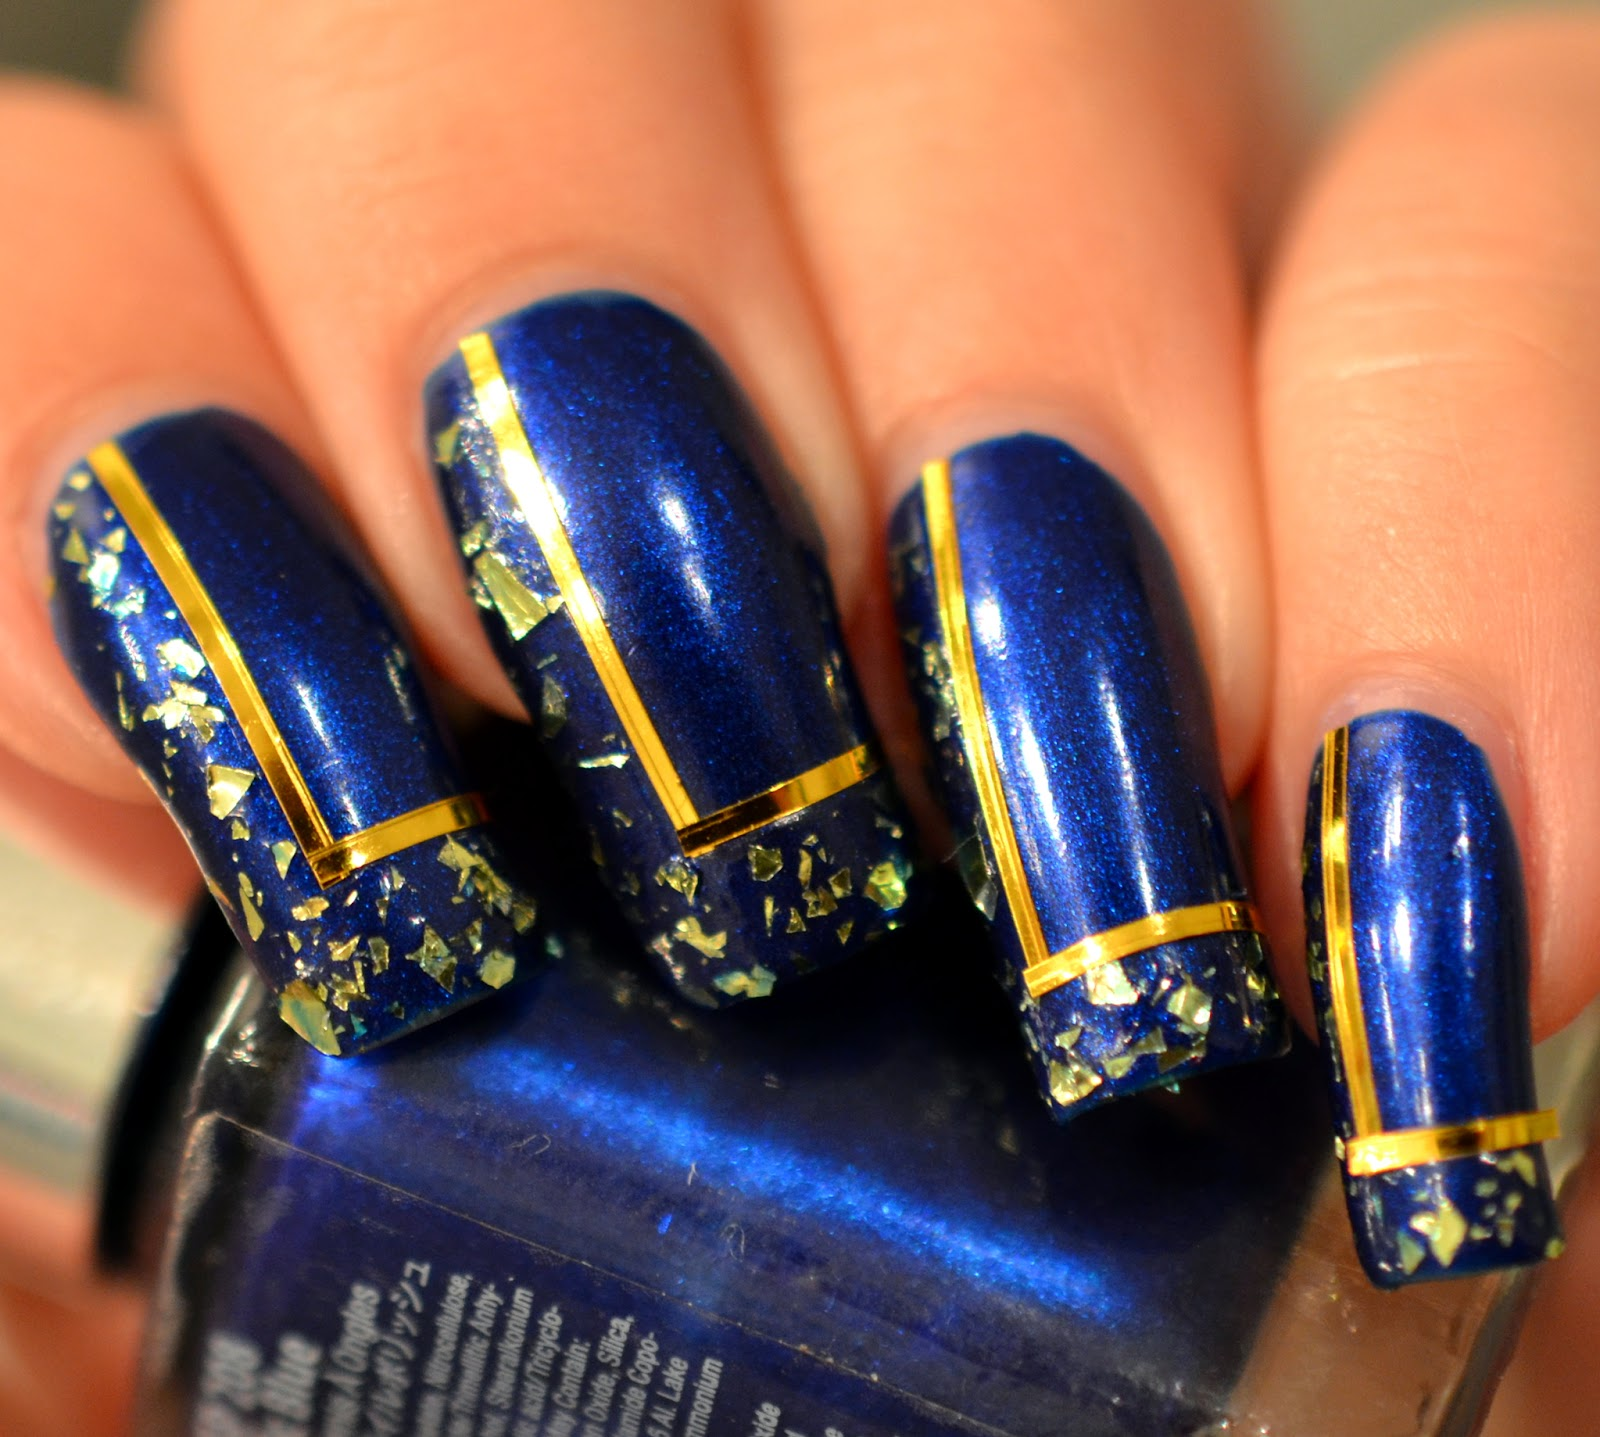 http://lenas-sofa.blogspot.de/2014/11/nyx-girls-nail-polish-208-pacific-blue.html